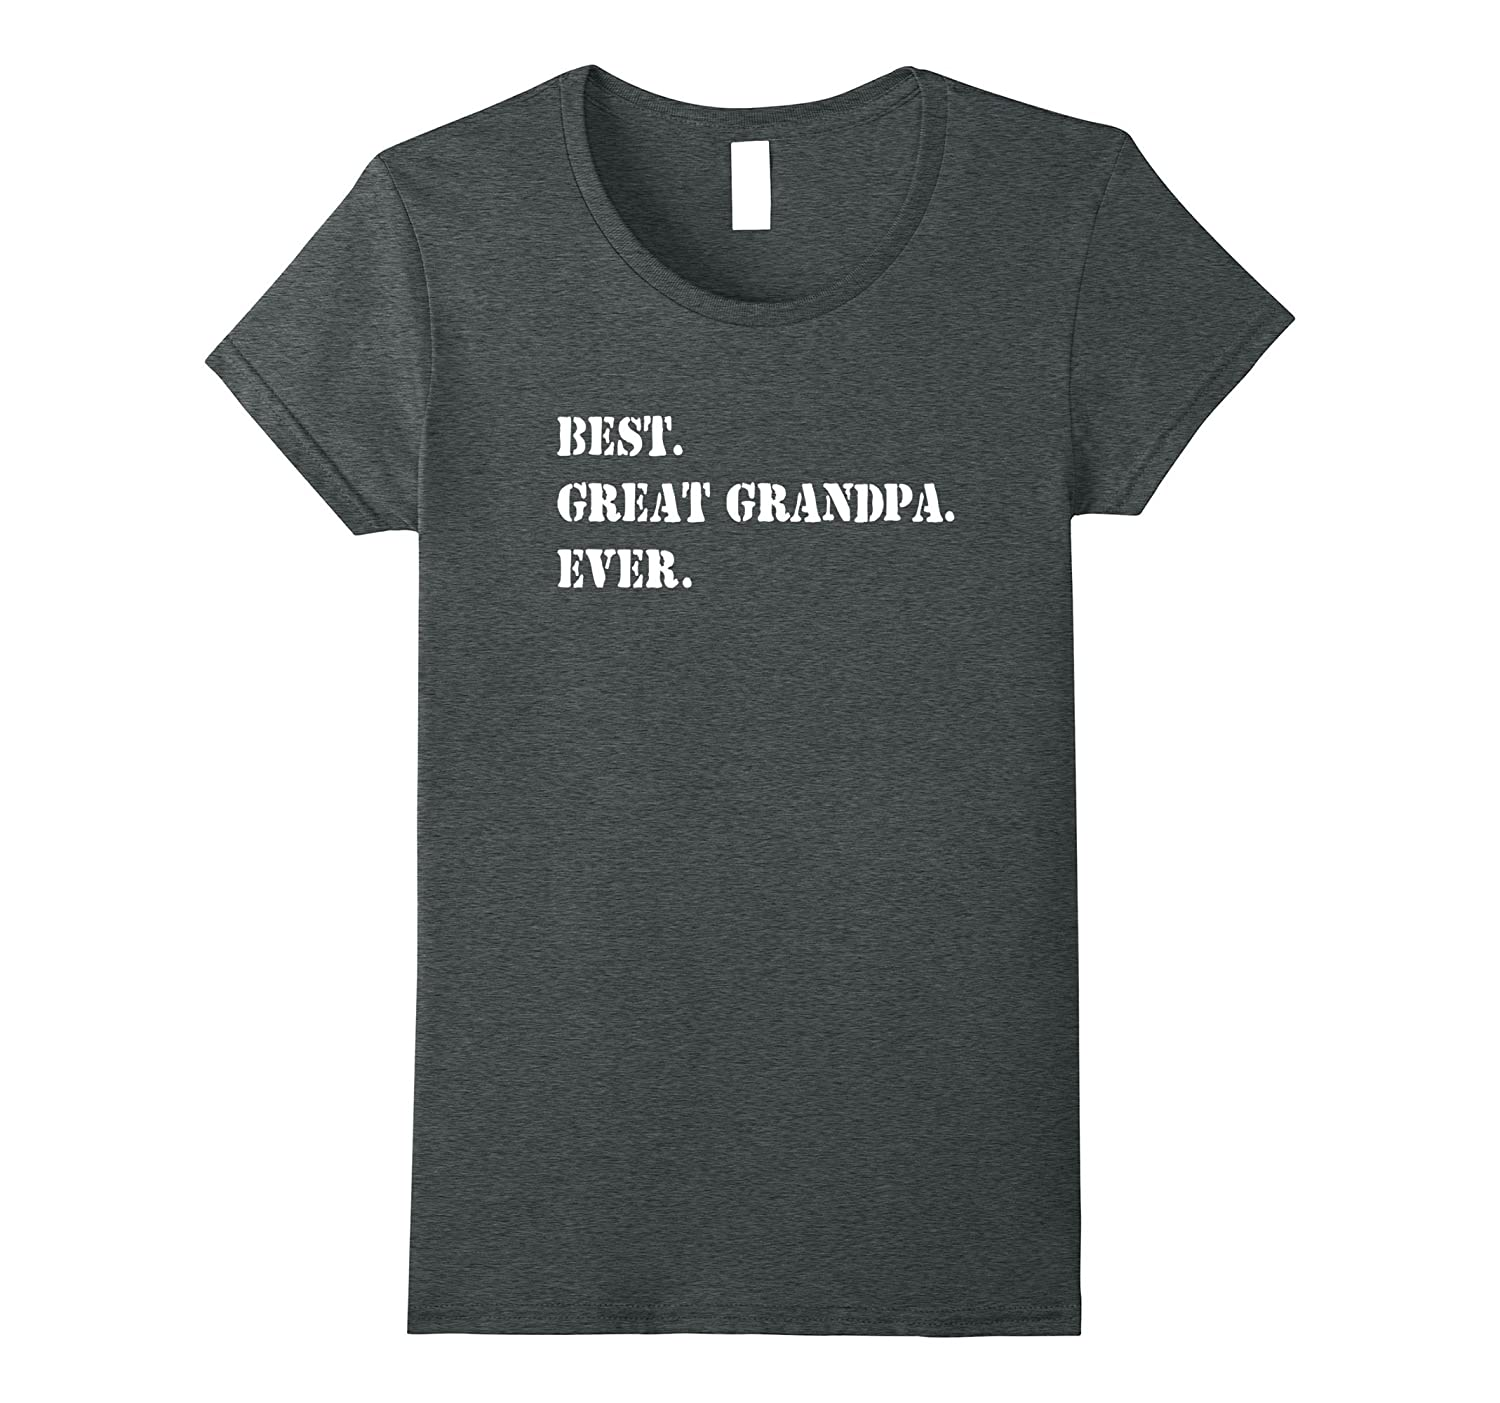 Best Great Grandpa Ever tshirt (military or army font)